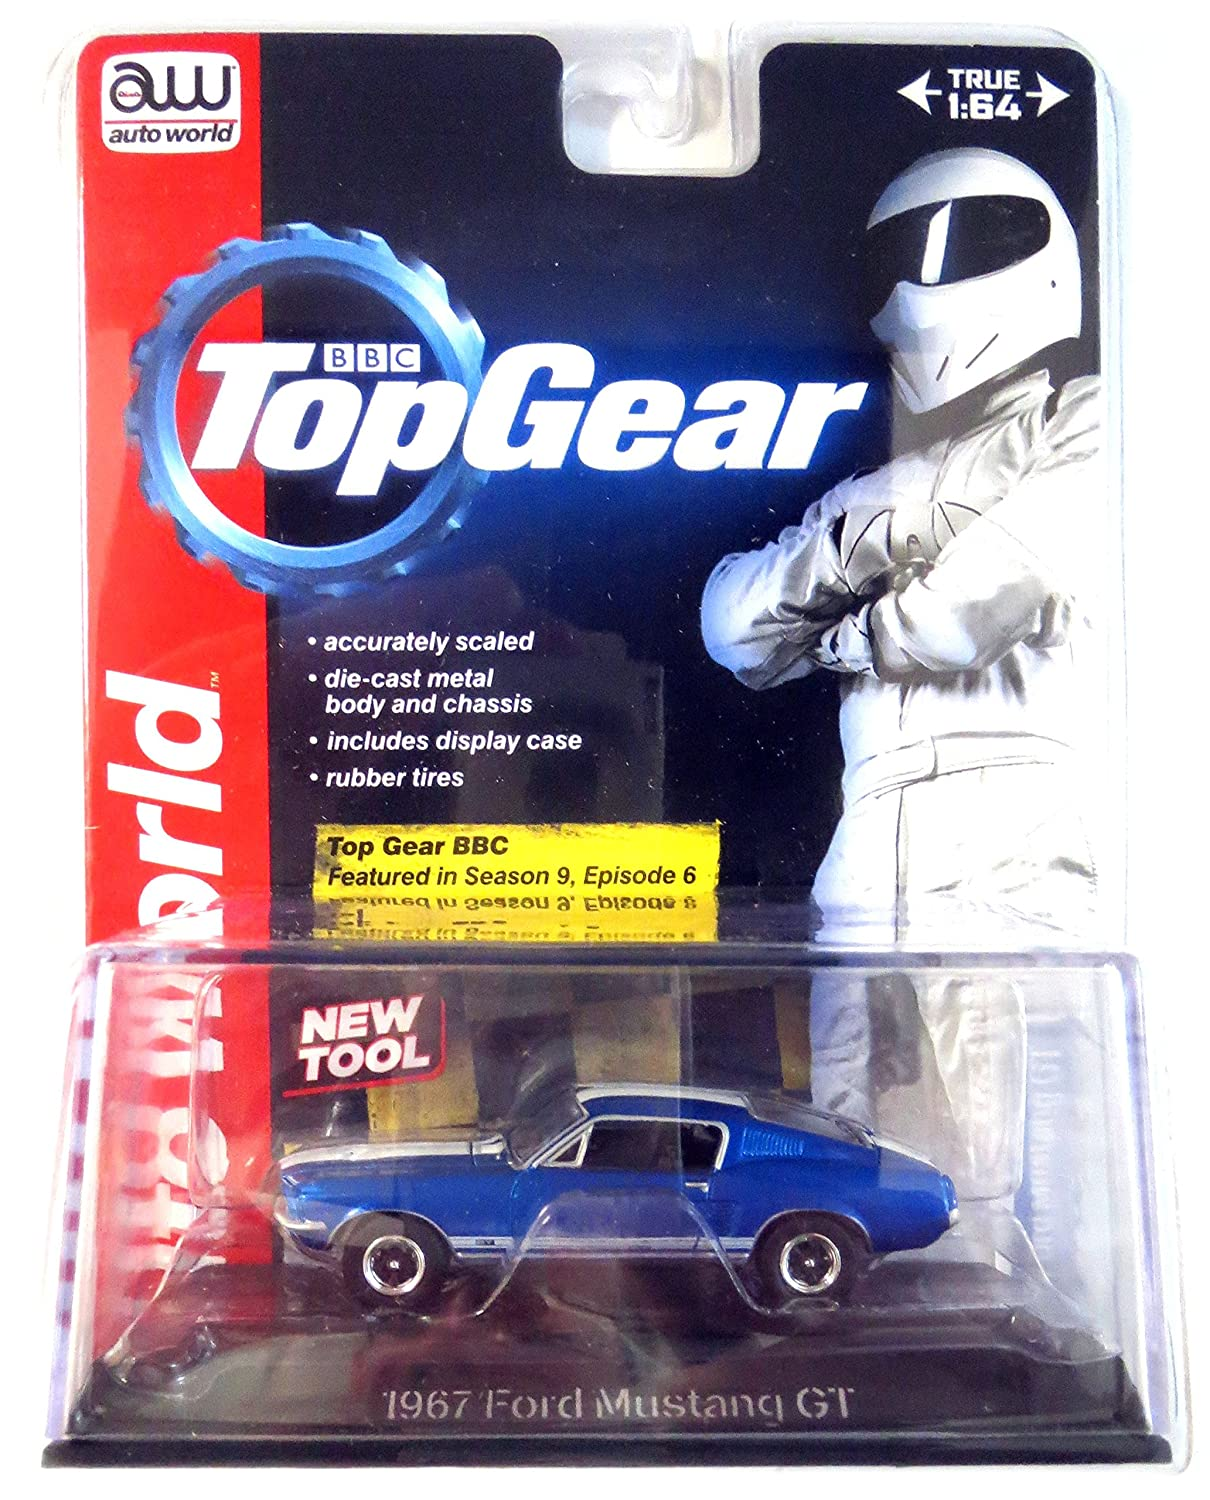 AUTO WORLD LICENSED PREMIUM BBC TOP GEAR Blue 1:64 SCALE 1967 FORD MUSTANG GT DIE-CAST